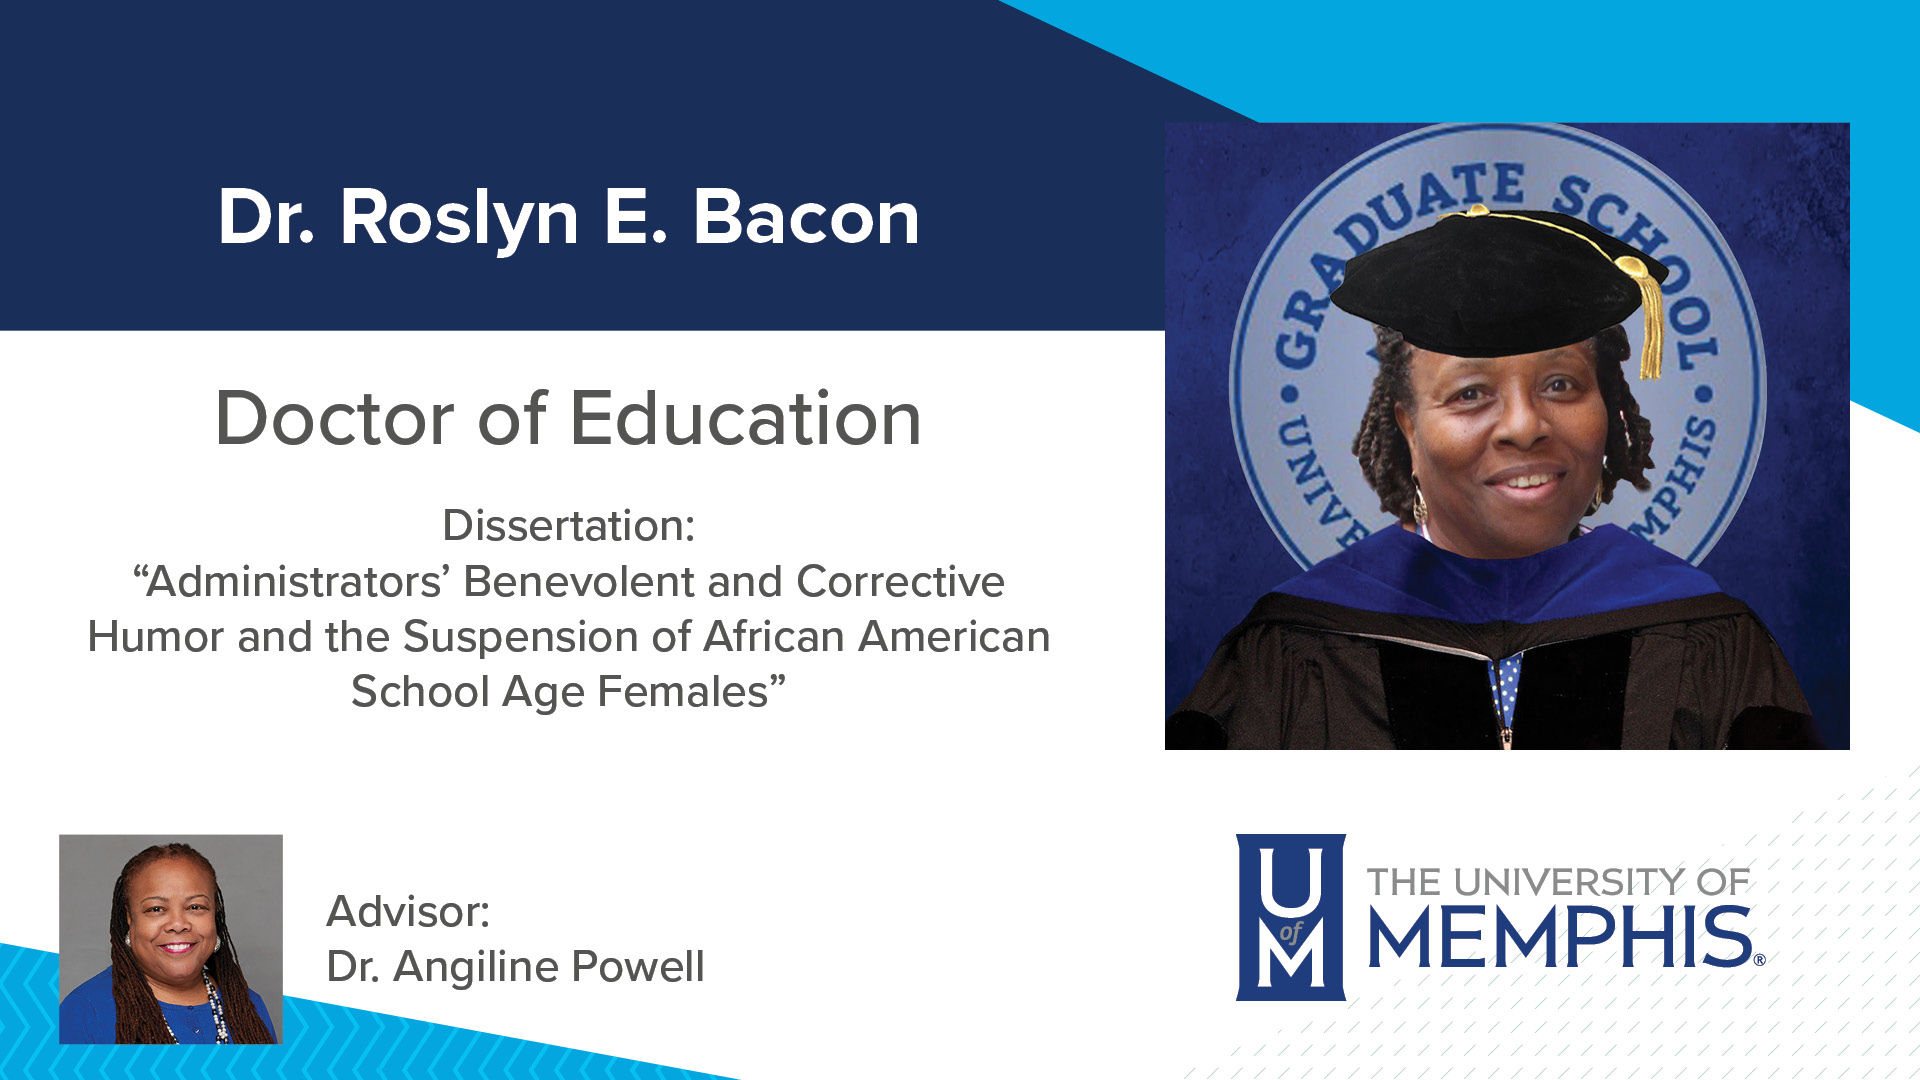 """Dr. Roslyn E. Bacon Dissertation: """"Administrators' Benevolent and Corrective Humor and the Suspension of African American School Age Females"""" Major Professor: Dr. Angiline Powell"""